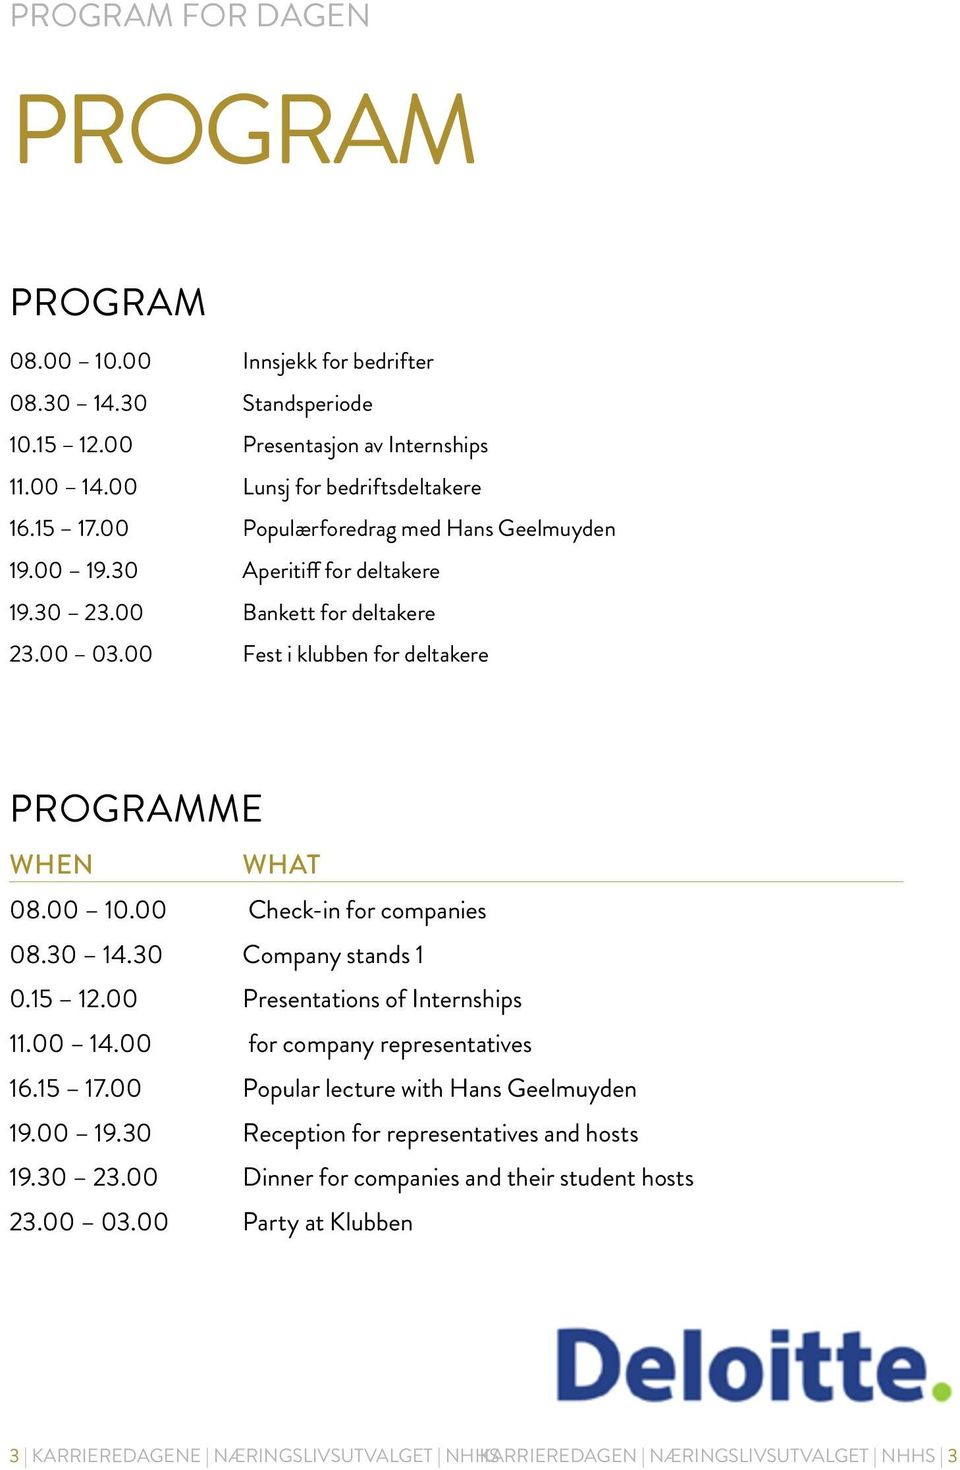 00 Check-in for companies 08.30 14.30 Company stands 1 0.15 12.00 Presentations of Internships 11.00 14.00 for company representatives 16.15 17.00 Popular lecture with Hans Geelmuyden 19.